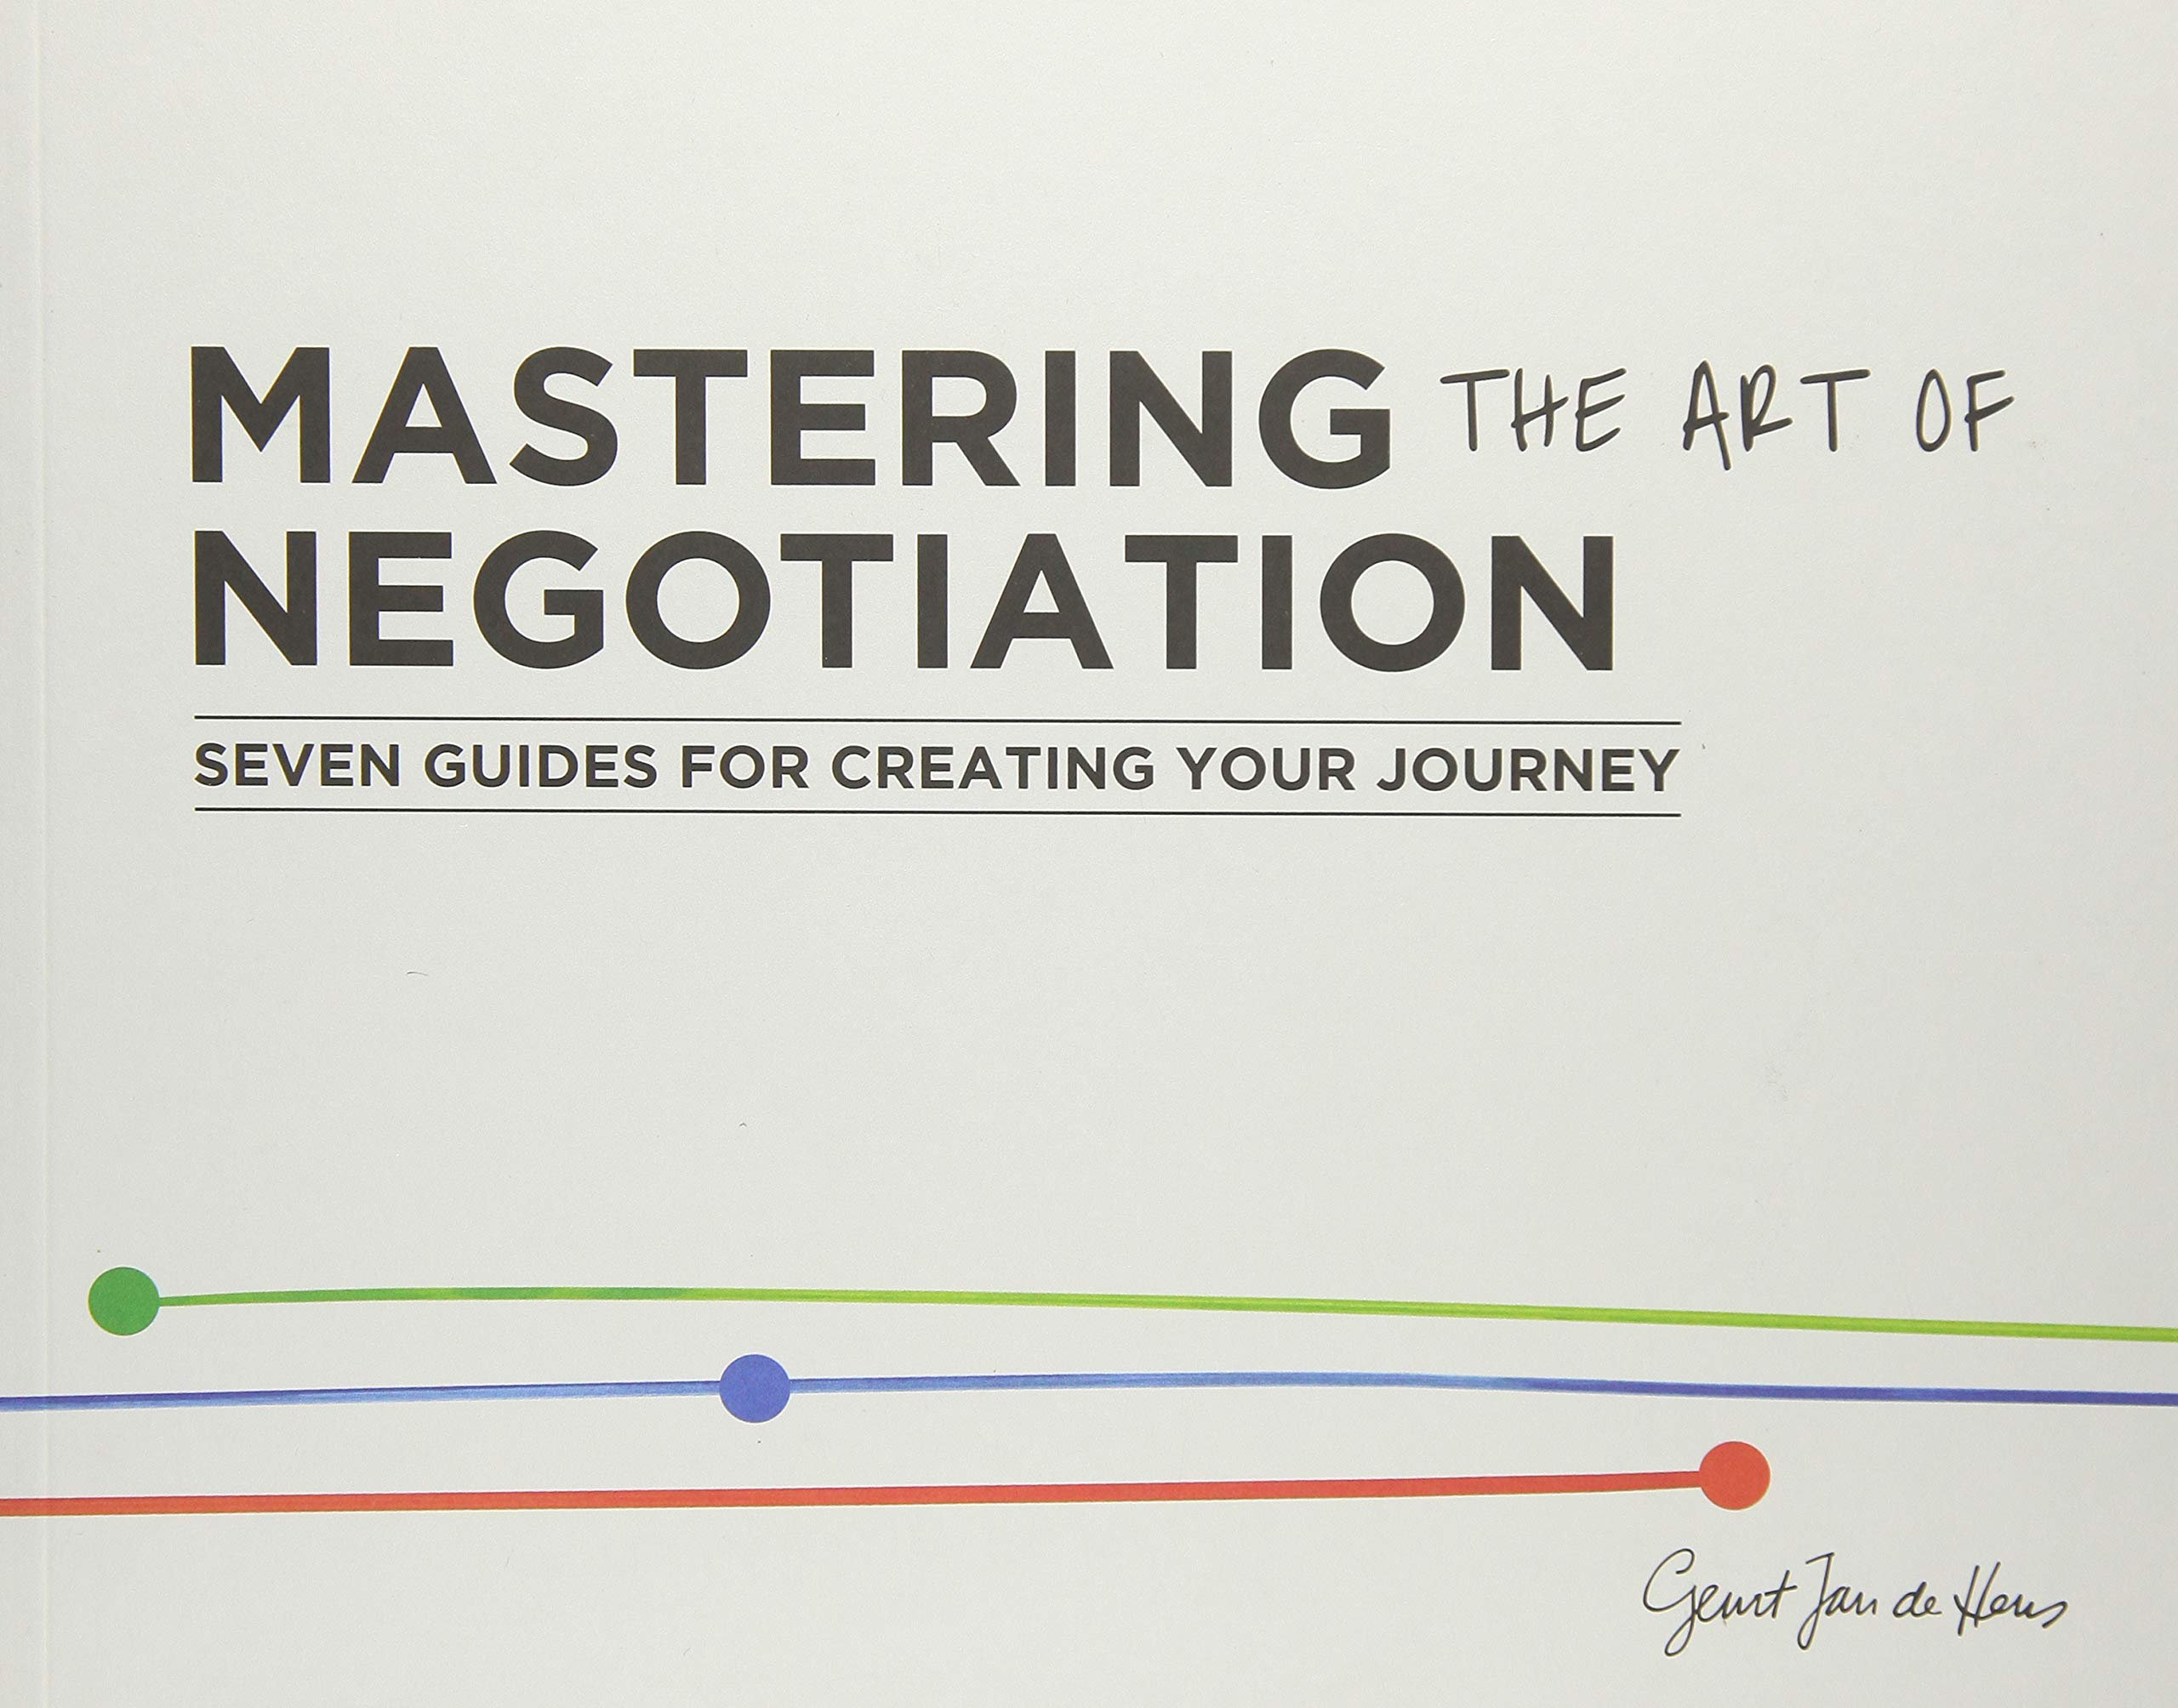 Mastering the Art of Negotiation: Seven Guides for Creating your Journey:  Geurt Jan de Heus: 9789063694319: Amazon.com: Books